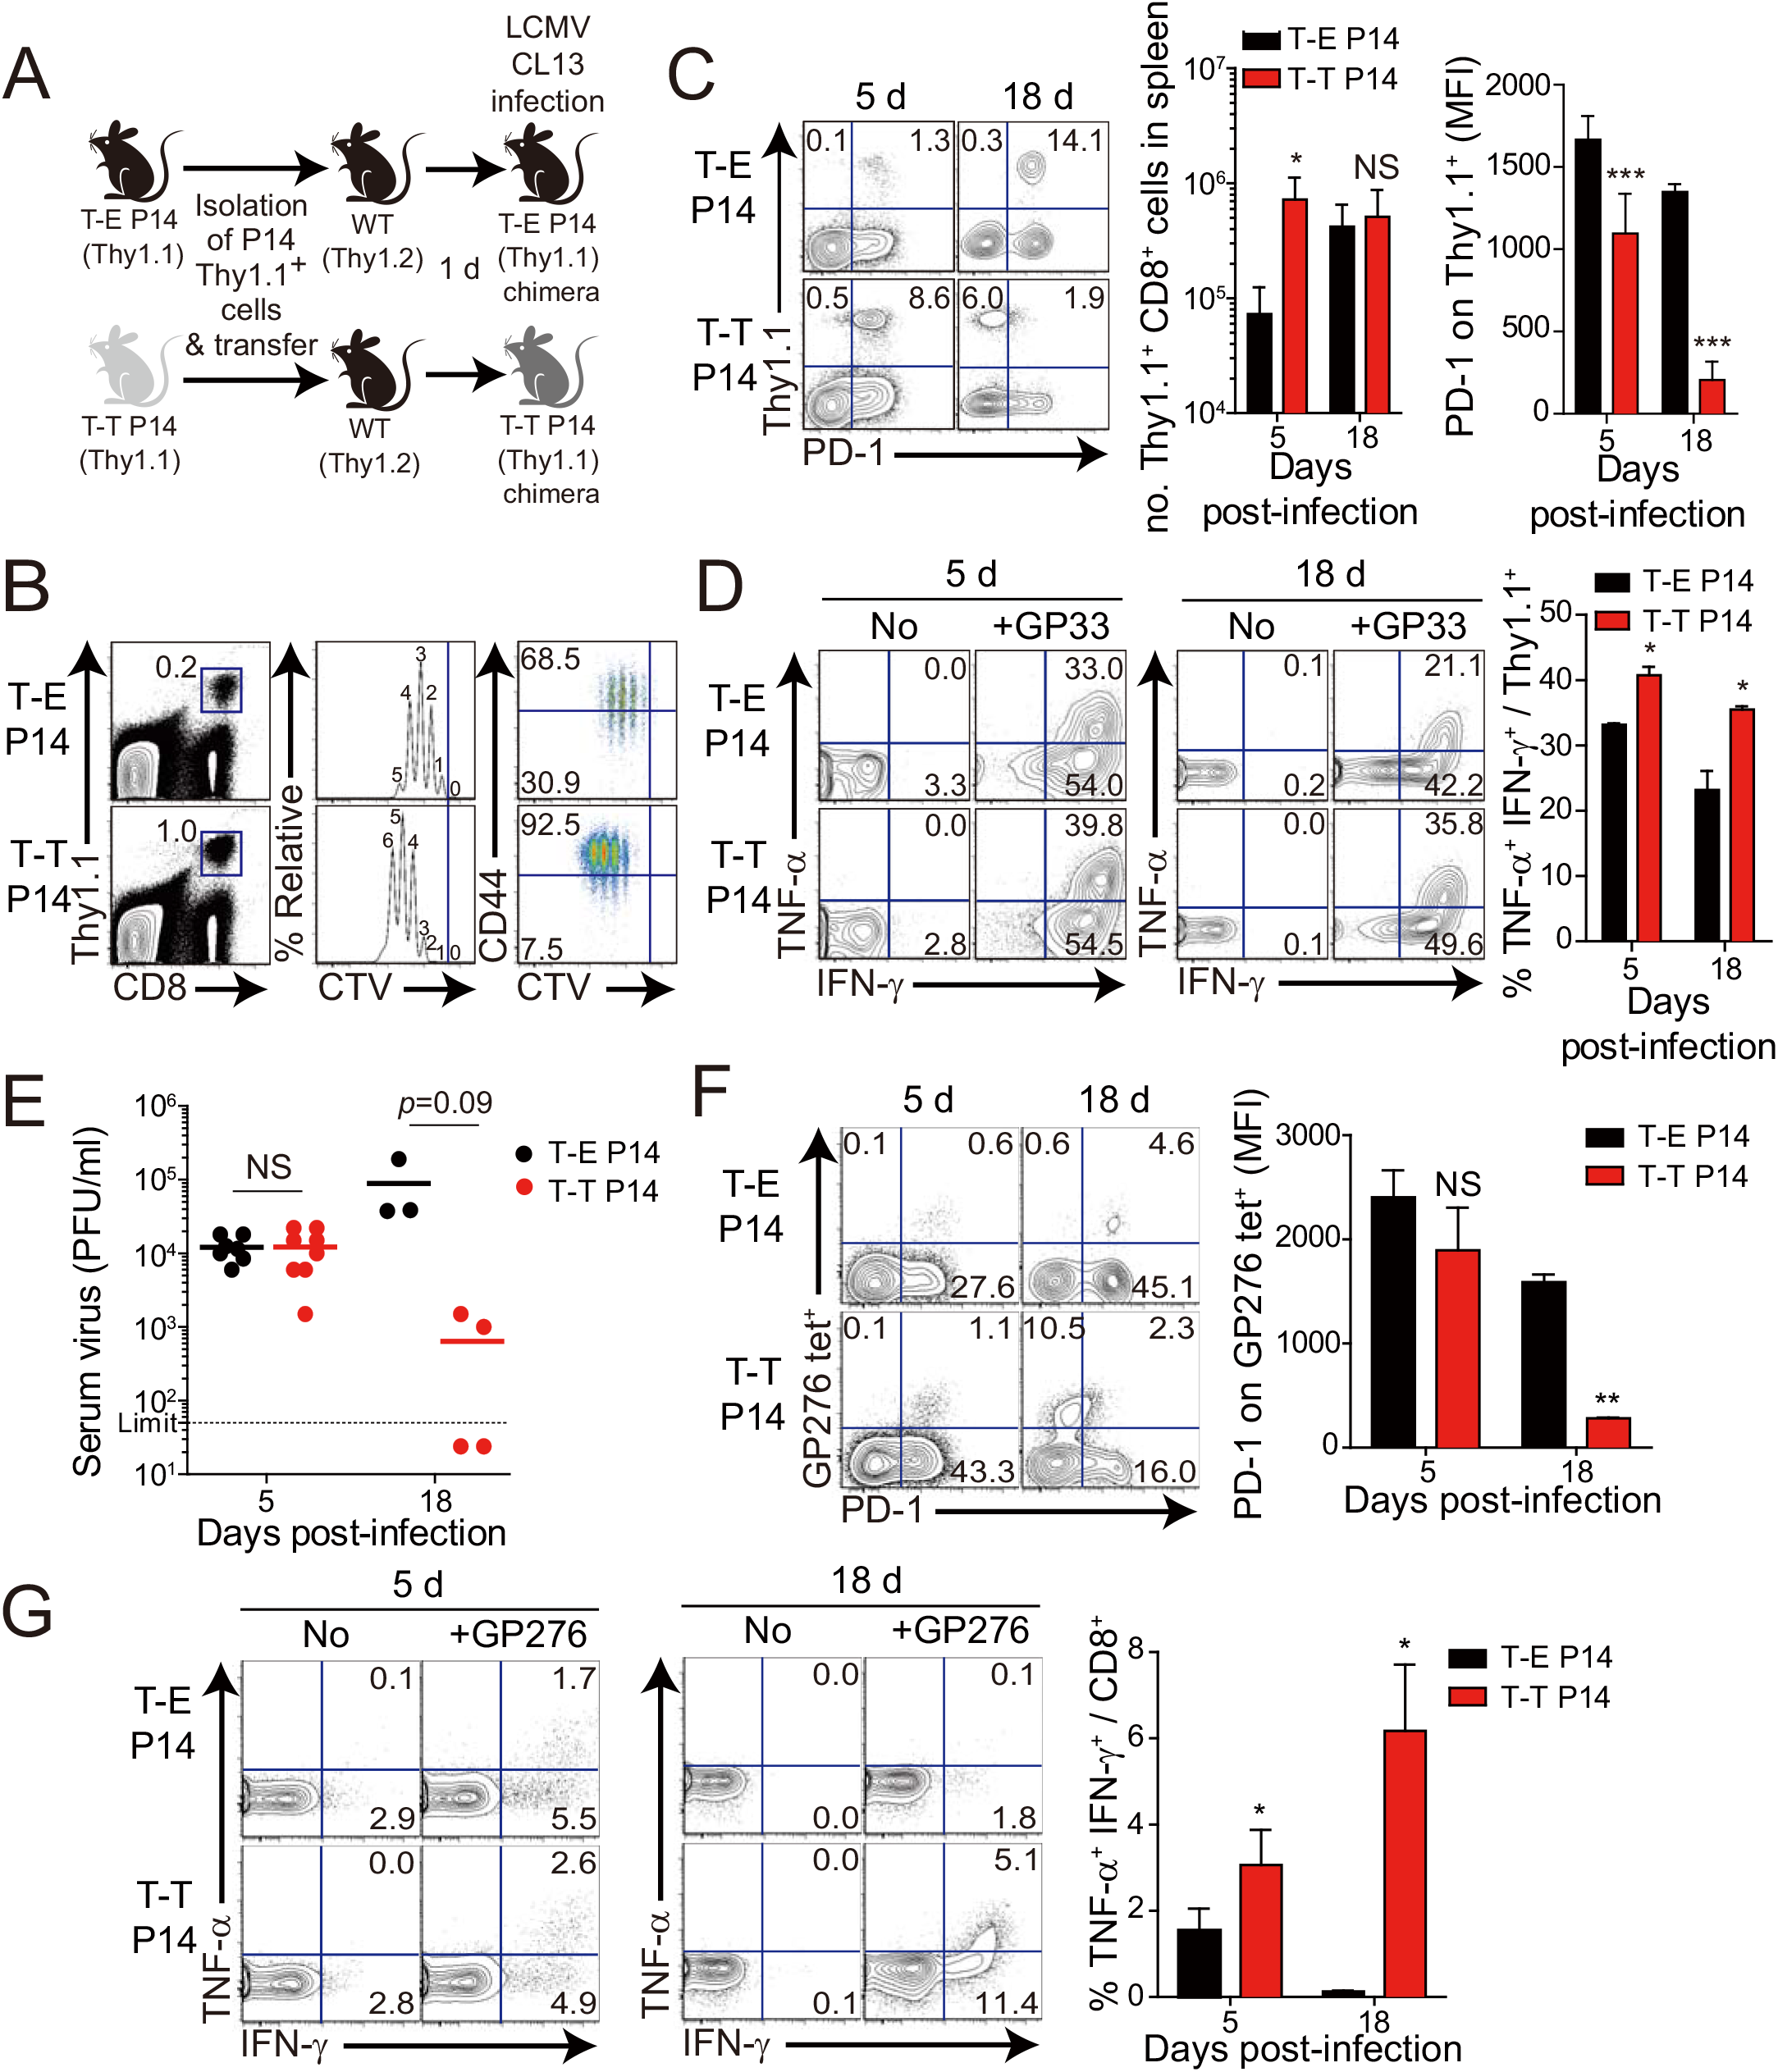 Control of chronic LCMV infection by innate CD8<sup>+</sup> T cells.